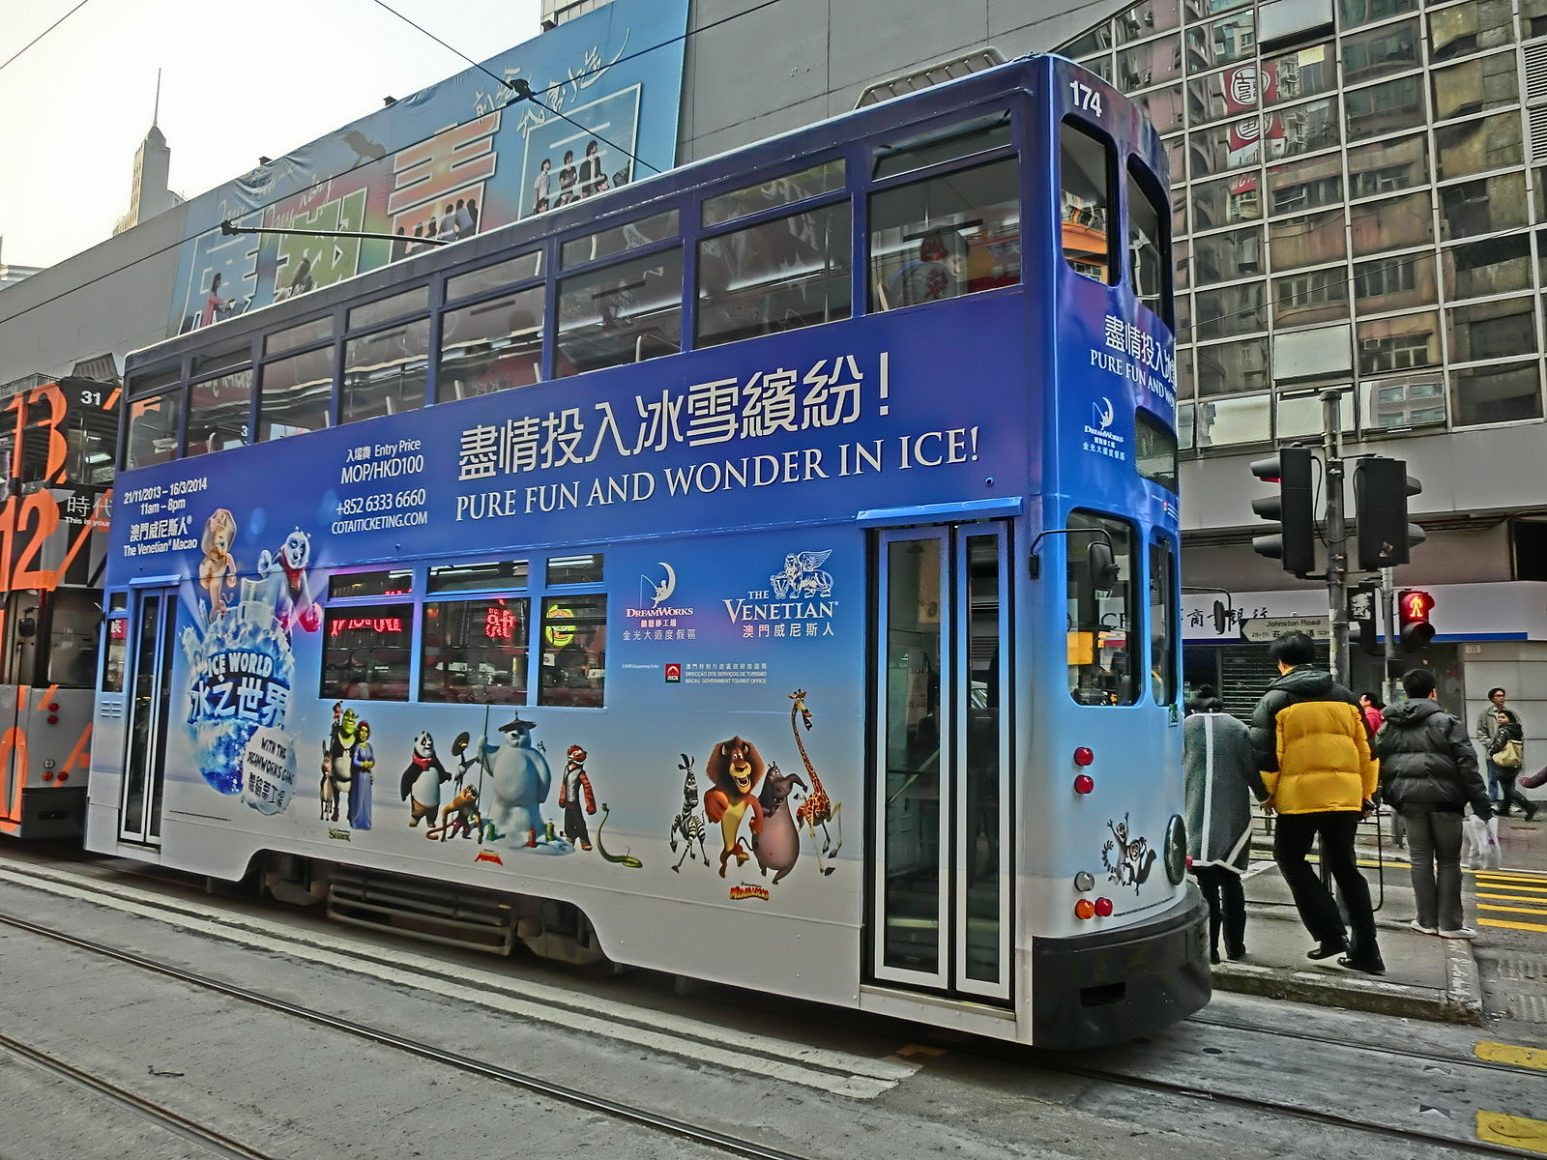 A streetcar ad for the Kung Fu Panda Adventure Ice World with the DreamWorks All-Stars exhibition.